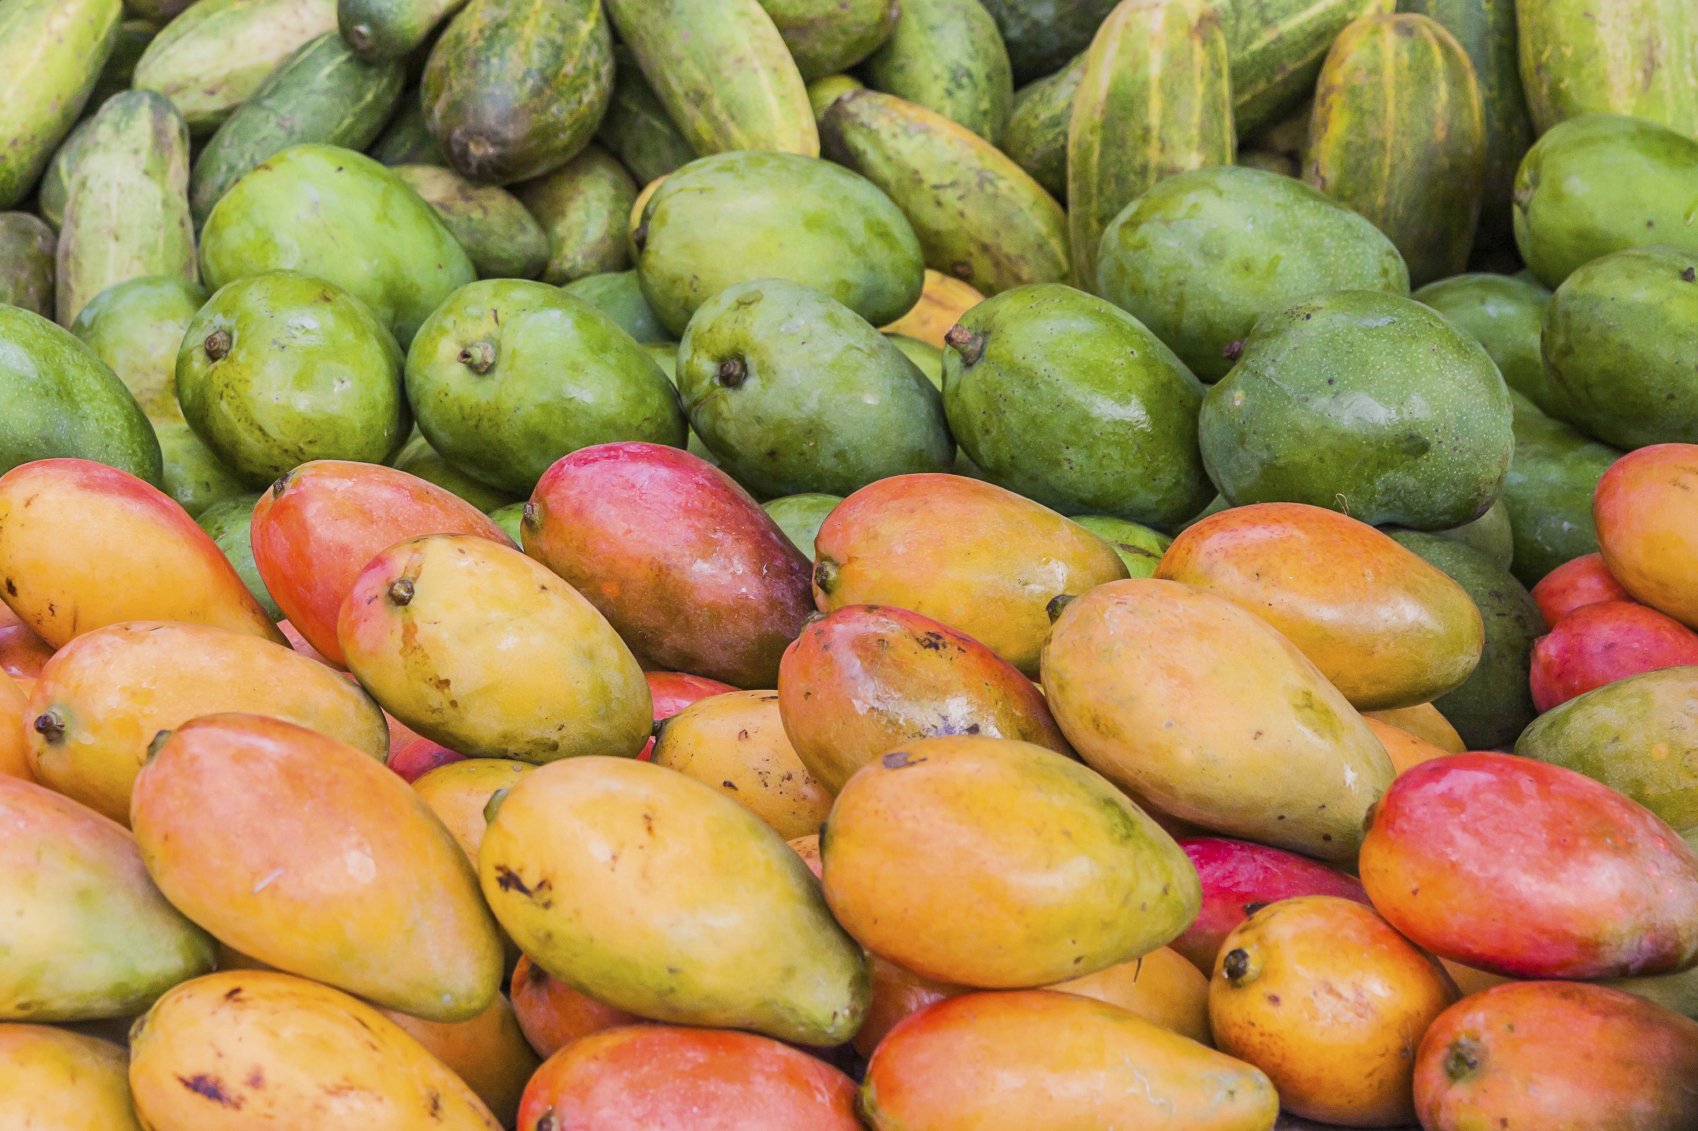 African Mango For Weight Loss And More!